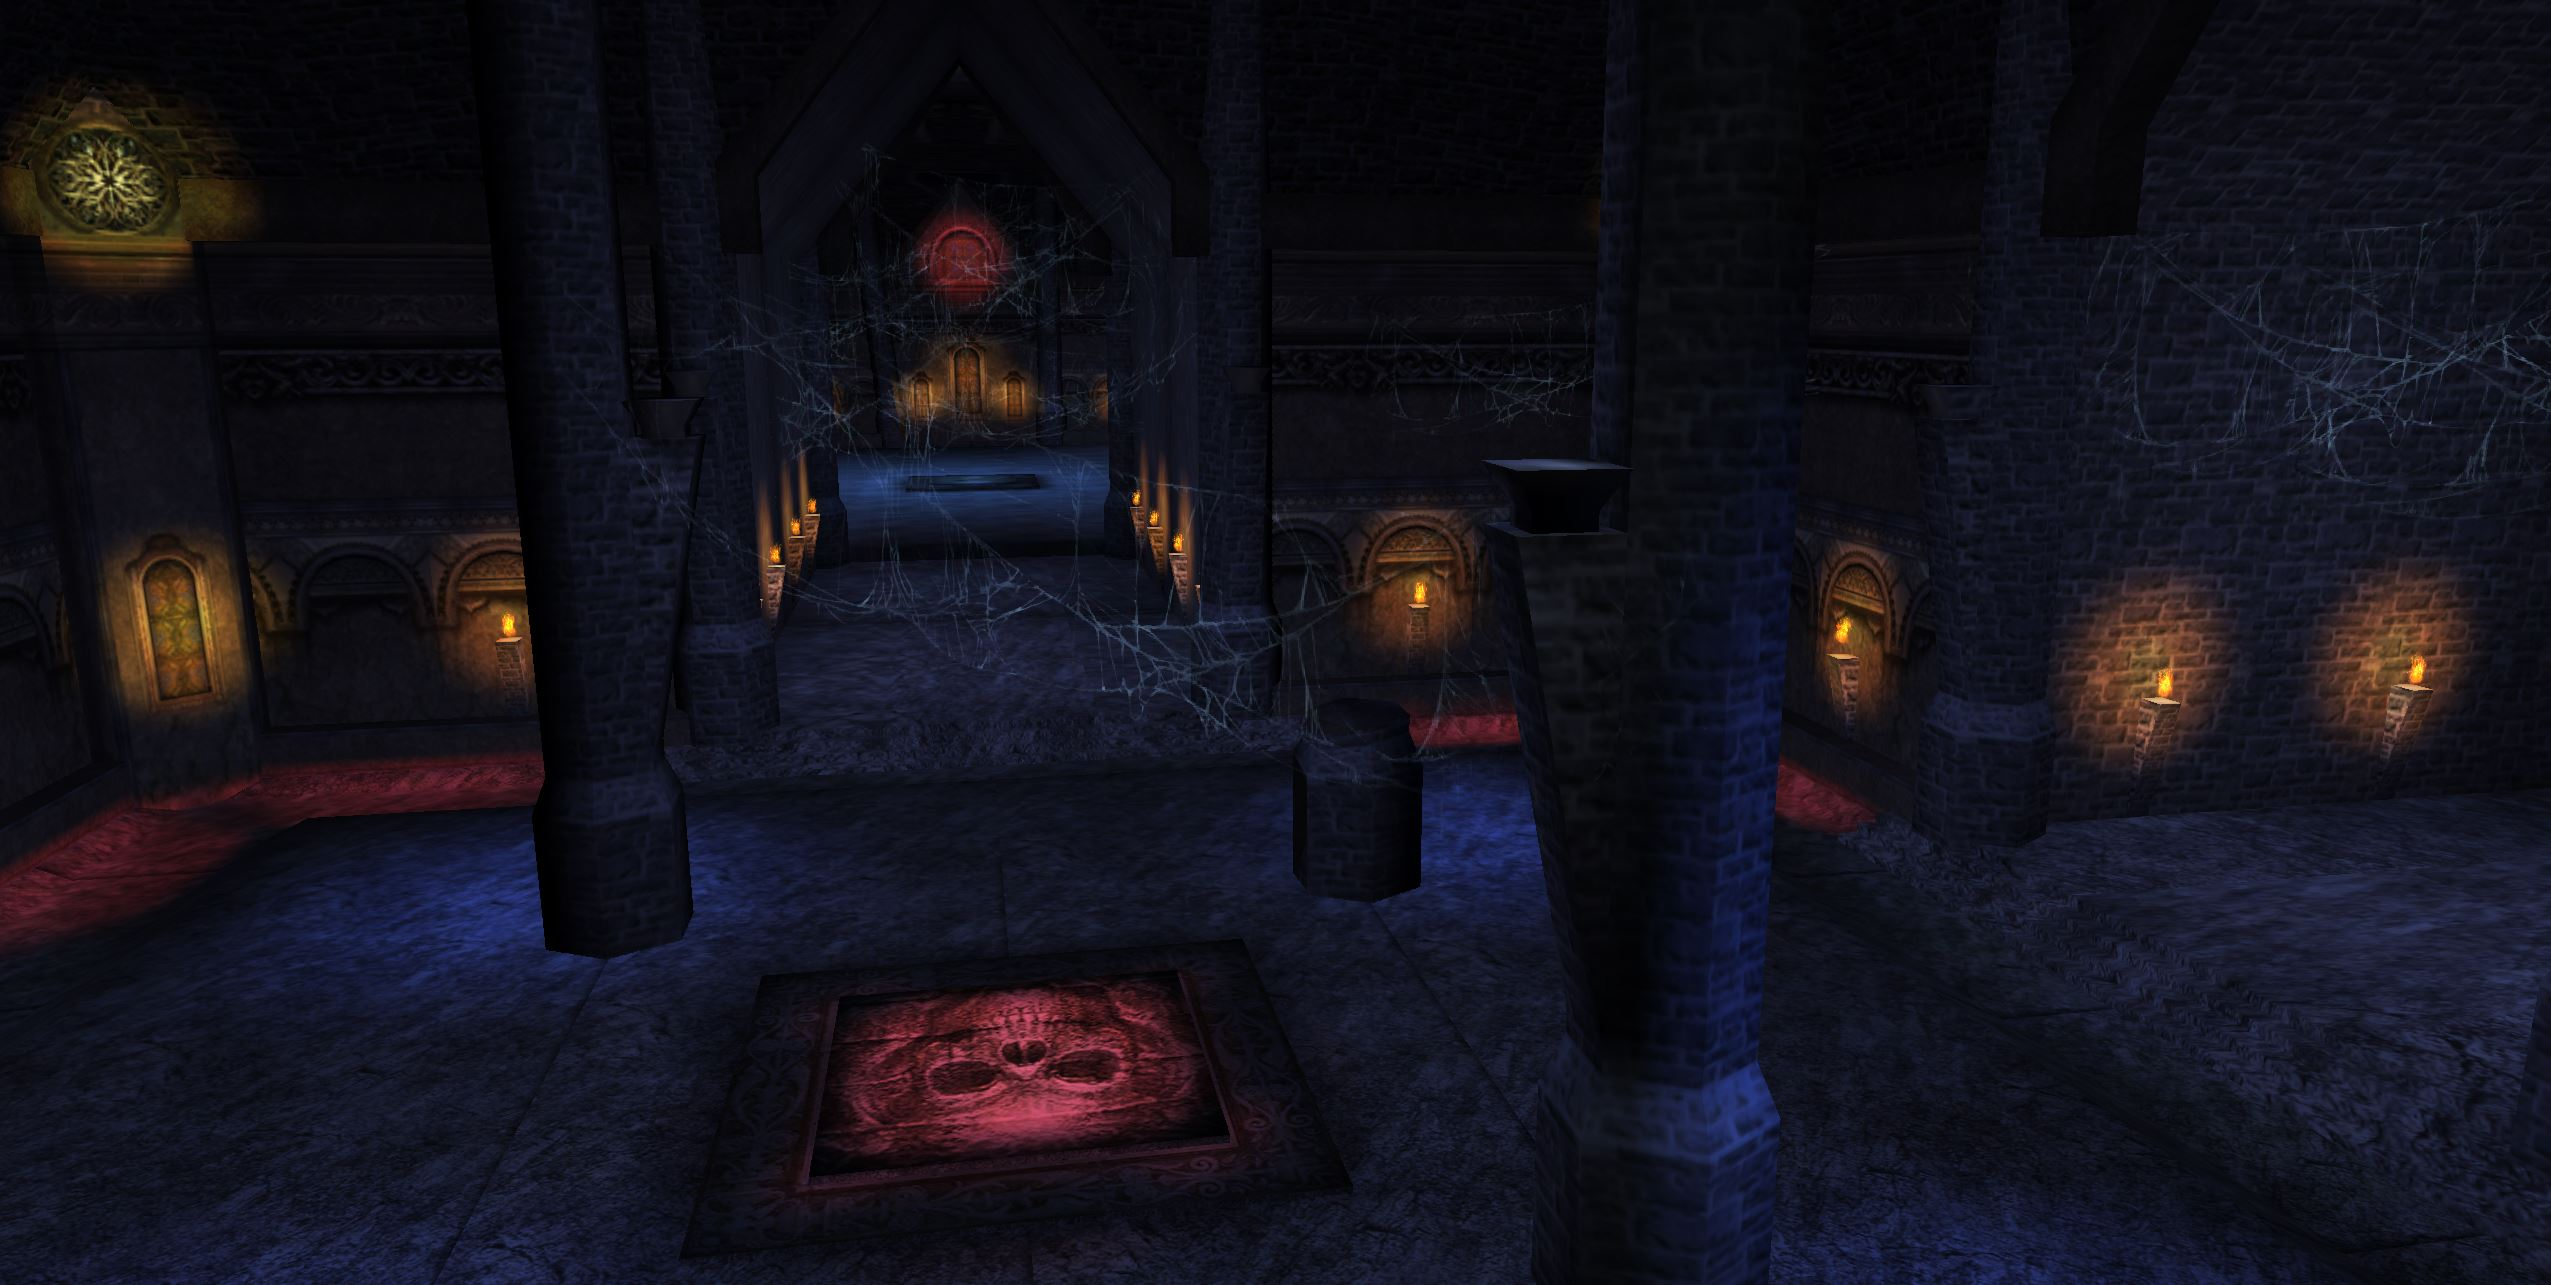 [Soon]Catacombs of damnation